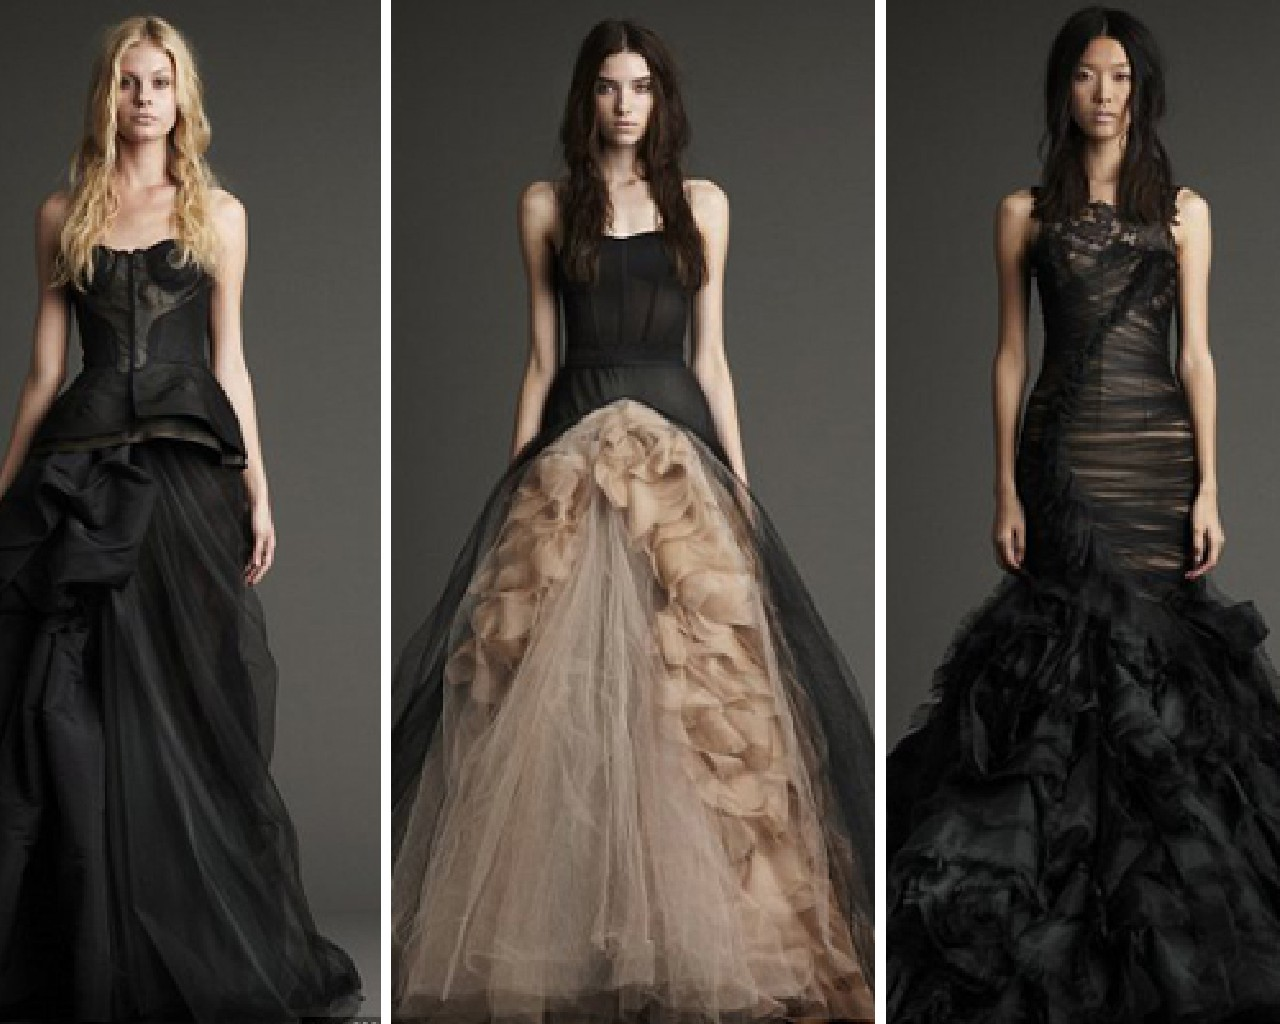 Black wedding dresses yes or no female fatal for Images of black wedding dresses